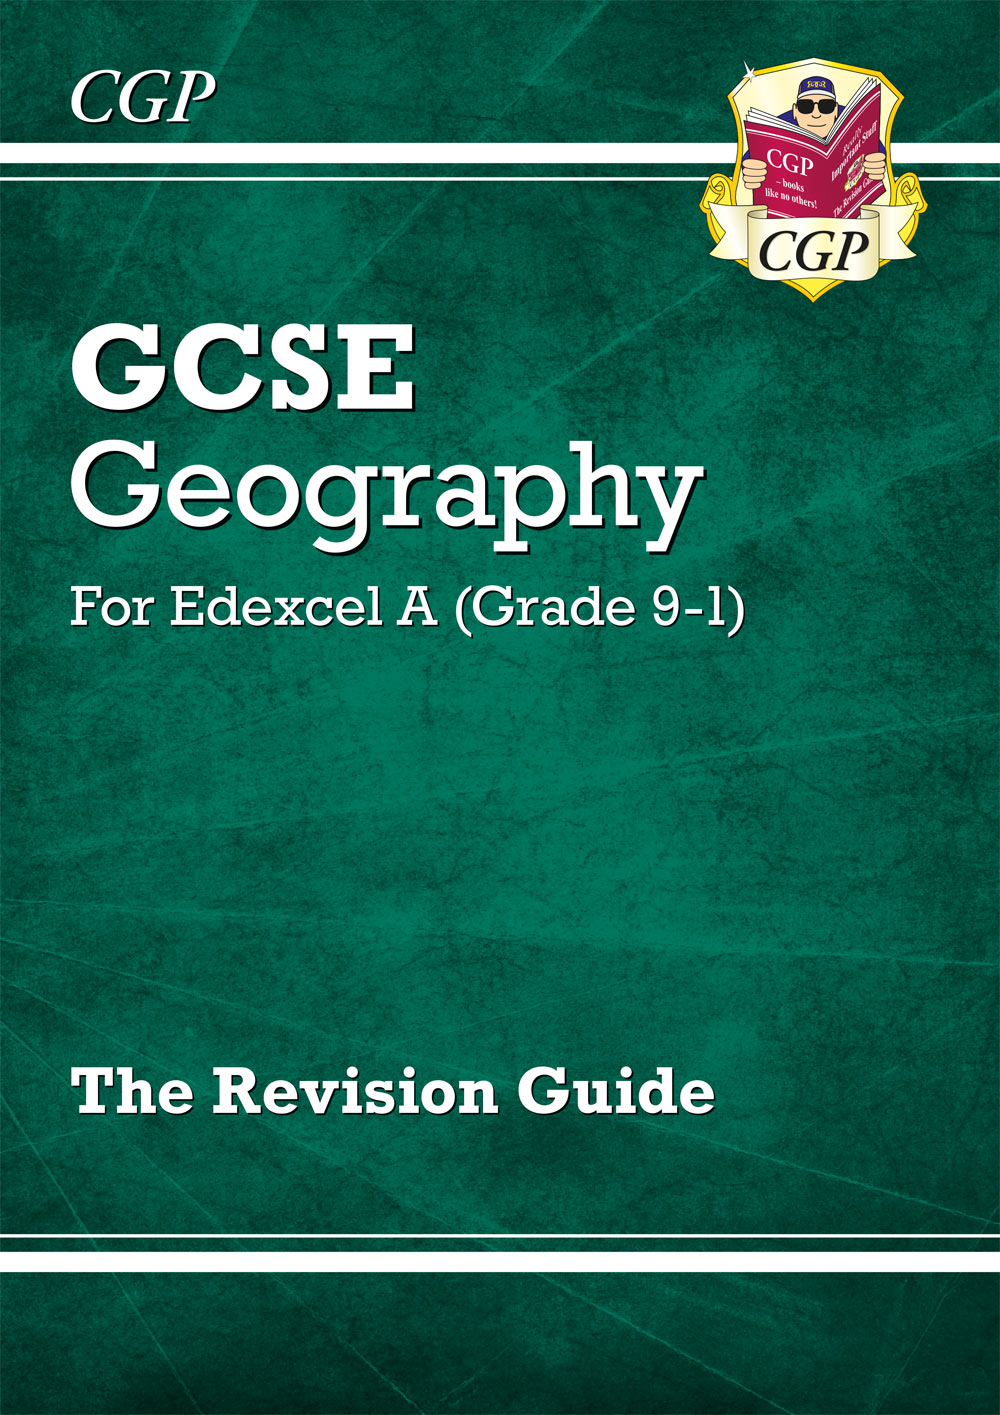 GEAR41 - New Grade 9-1 GCSE Geography Edexcel A - Revision Guide